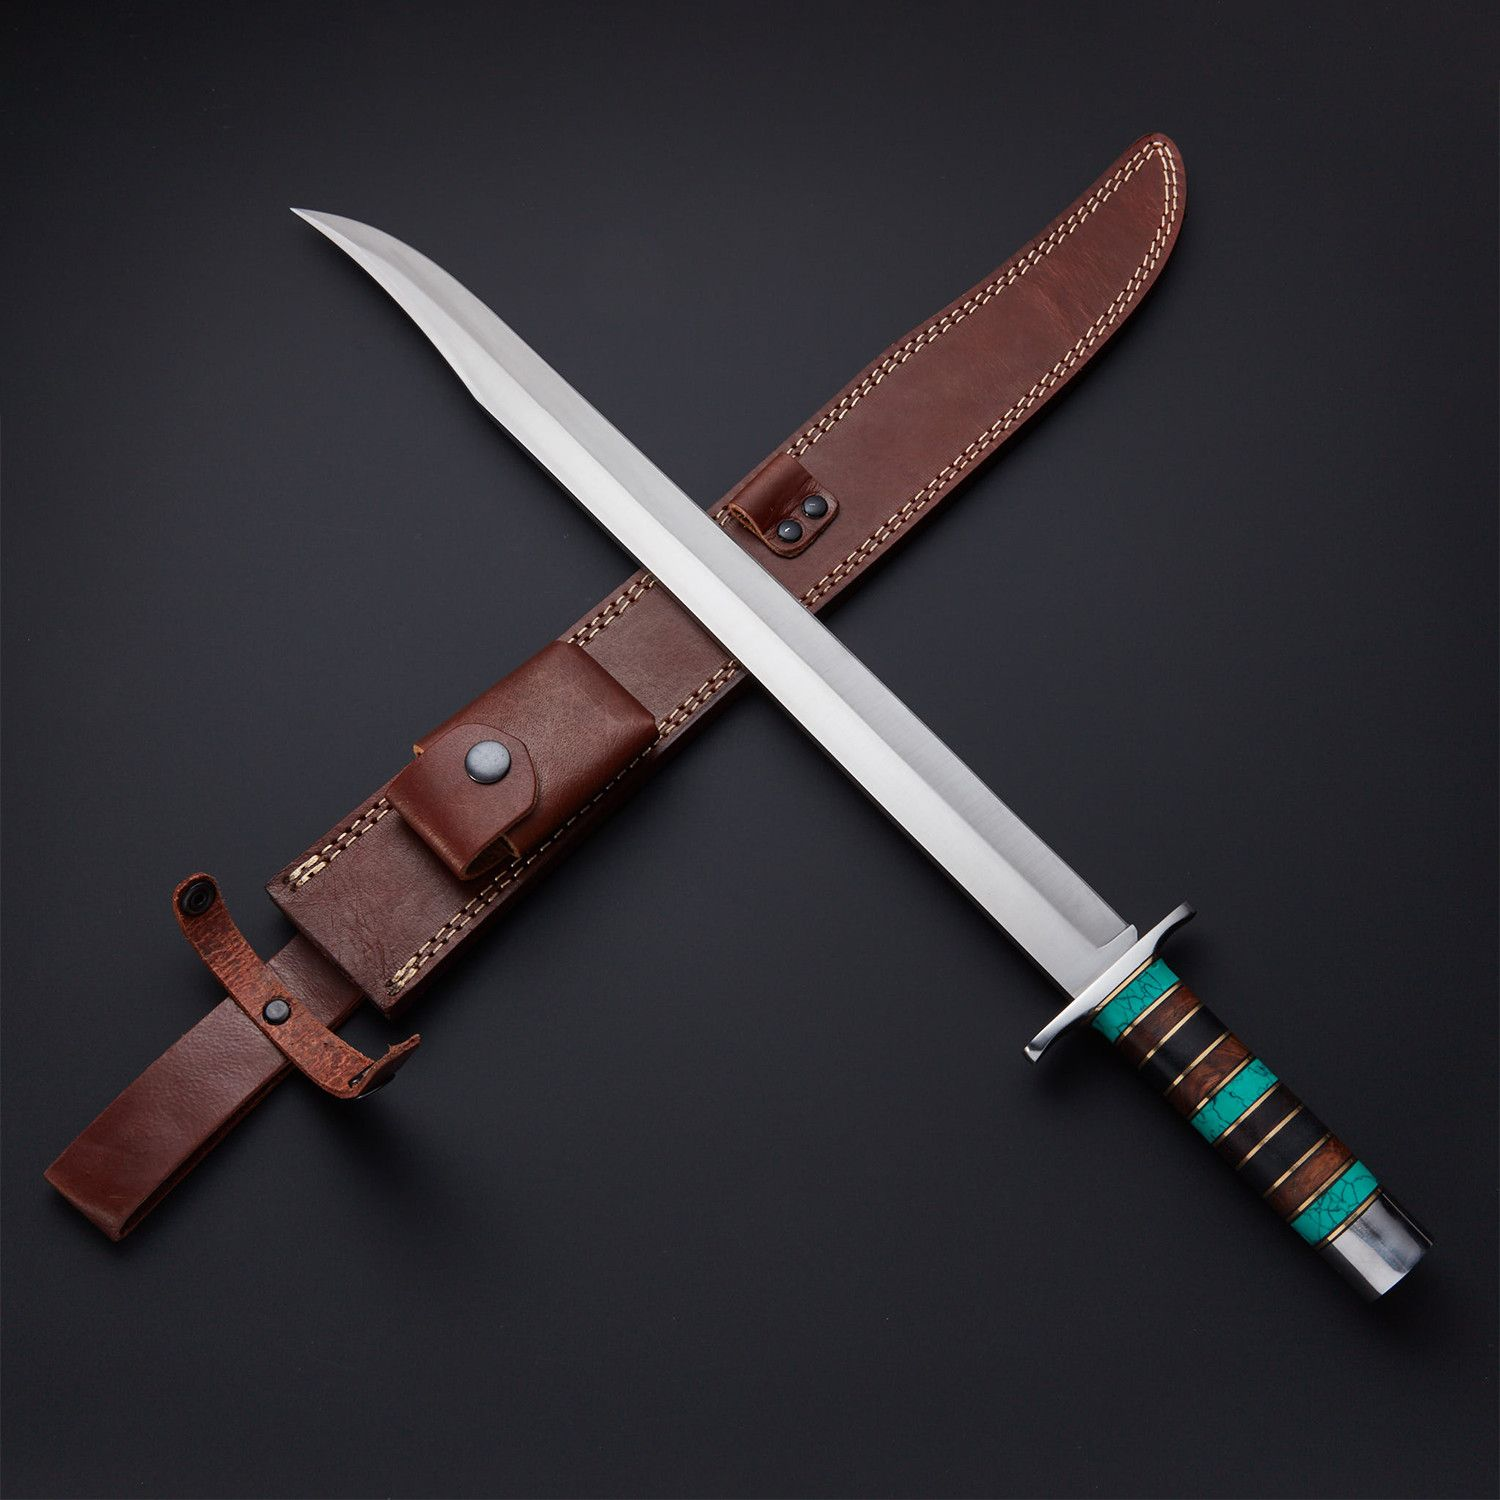 Busse Combat Sword Busse Combat Knife Company At 23 Inches Long This Is Not A Knife A Nice Modern Take On The Roman Gladius This Is A Mo Combat Knives Gladius Sword